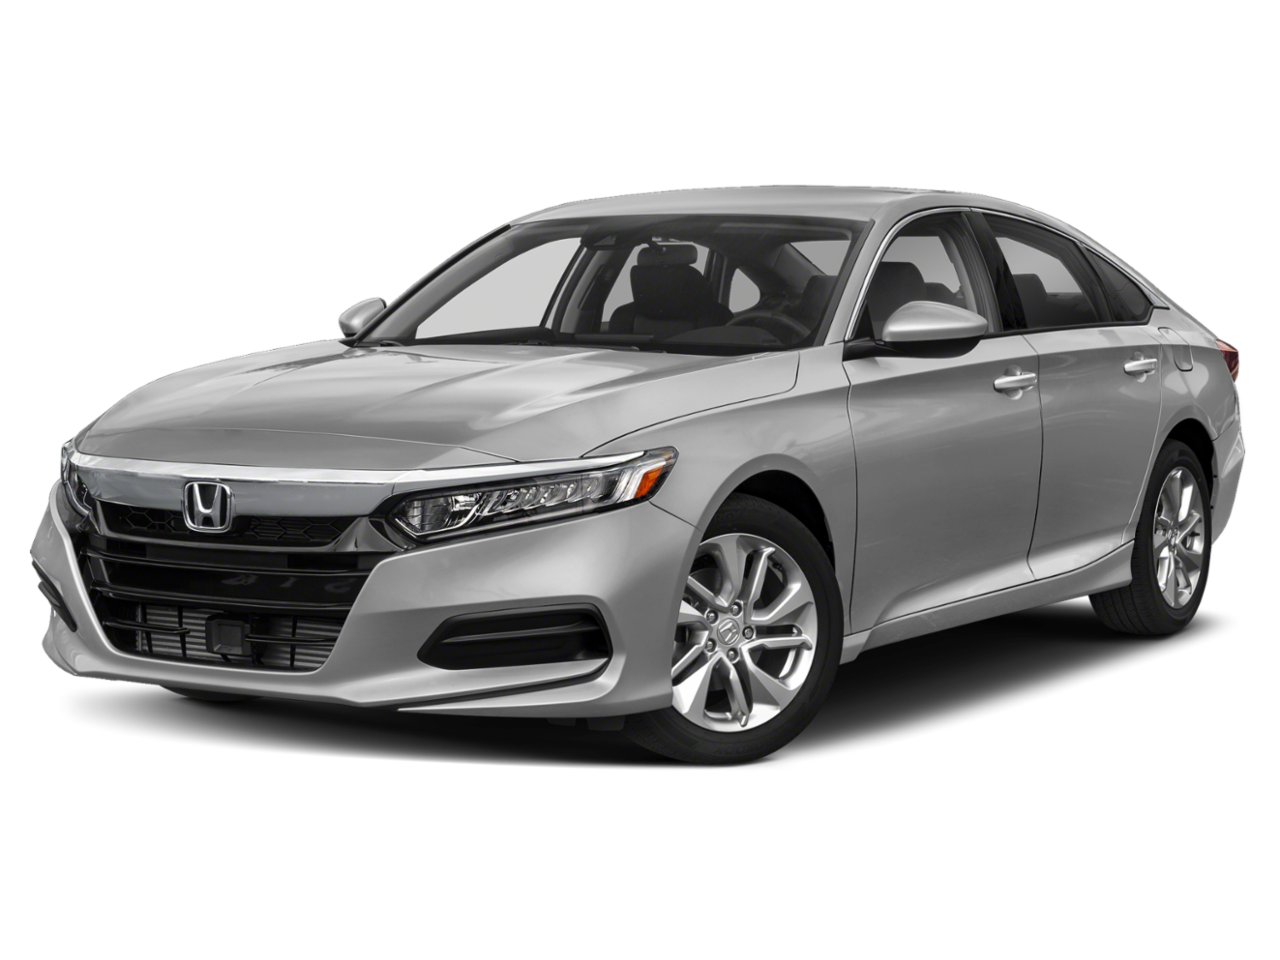 Honda 2020 Accord Sedan LX 1.5T